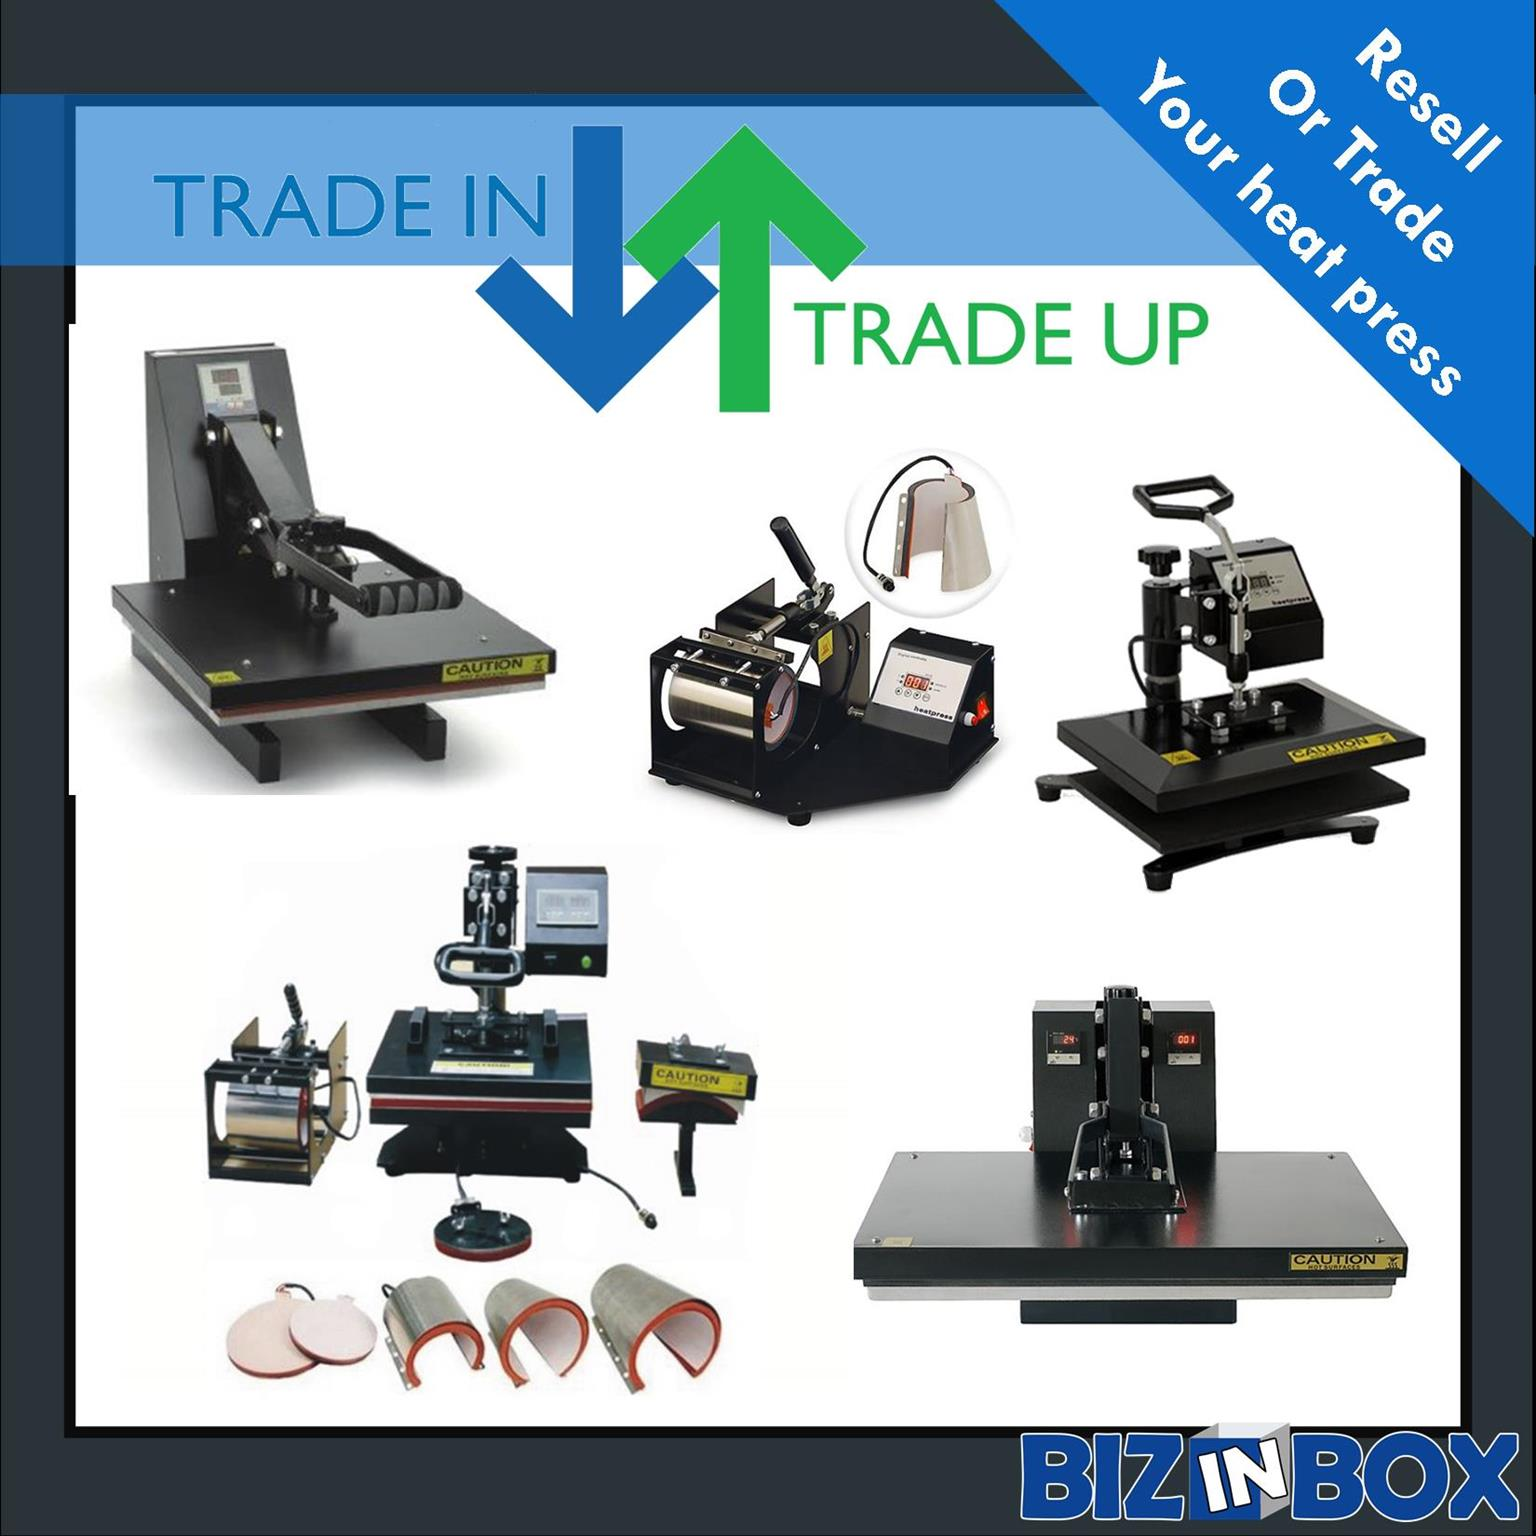 Do you want to trade in or sell your second hand heat press for larger heat press